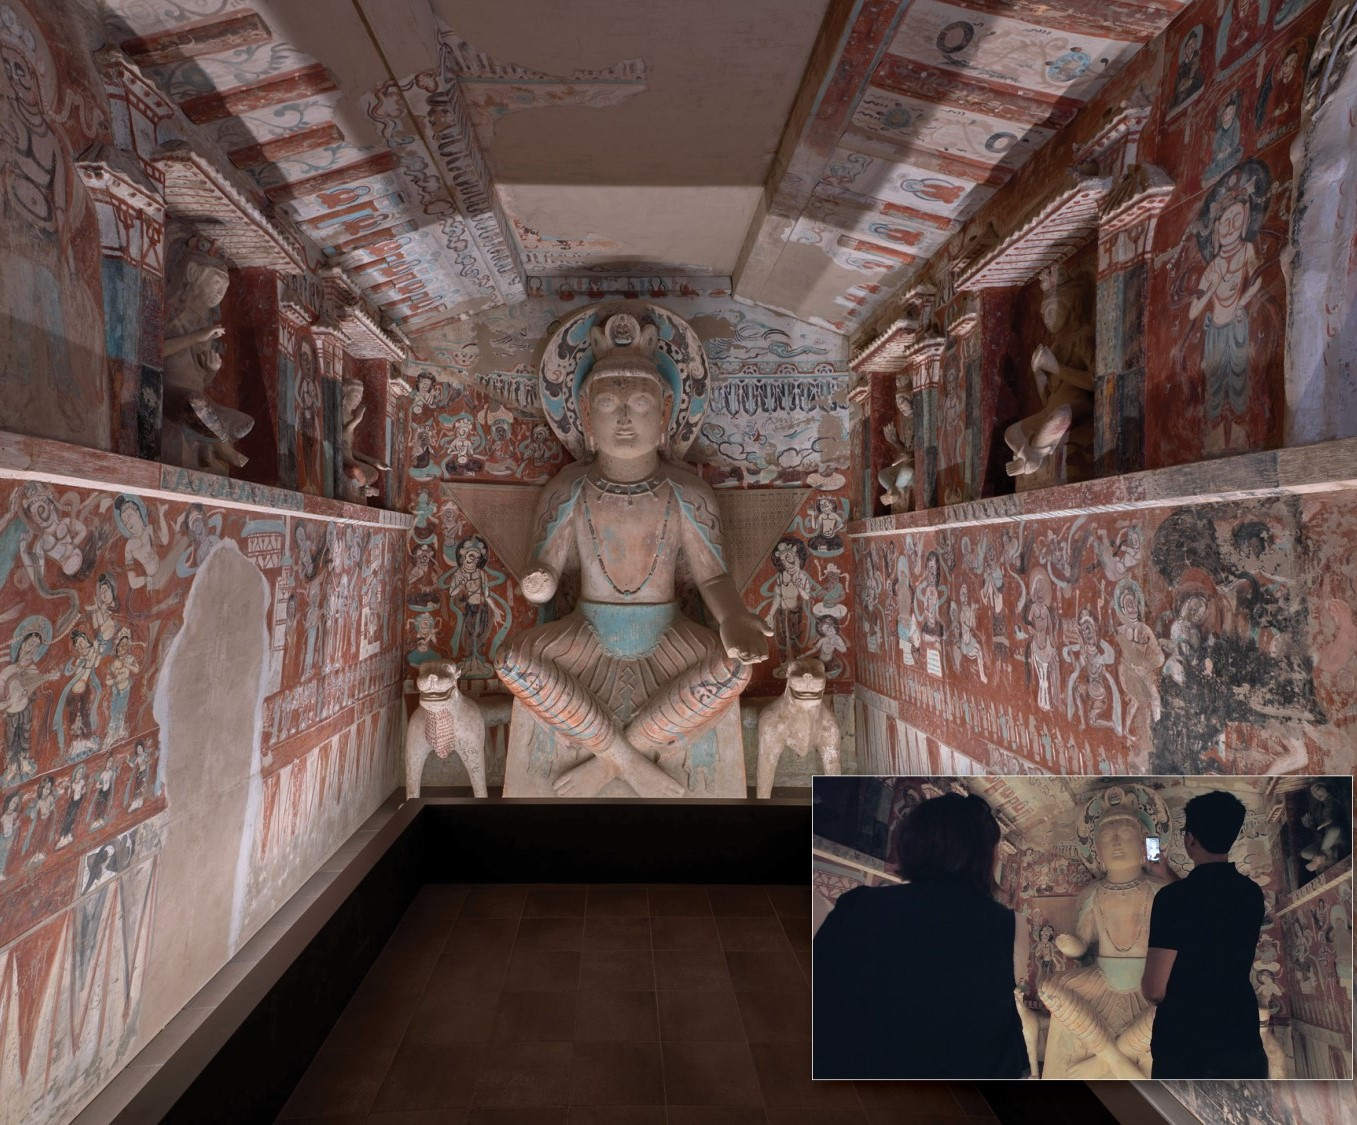 Special   Achievement    Cave Temples of Dunhuang: Buddhist Art on China's Silk Road    The Getty Research Institute and The Getty Conservation Institute, Los Angeles   for commitment to comprehensive research and conservation